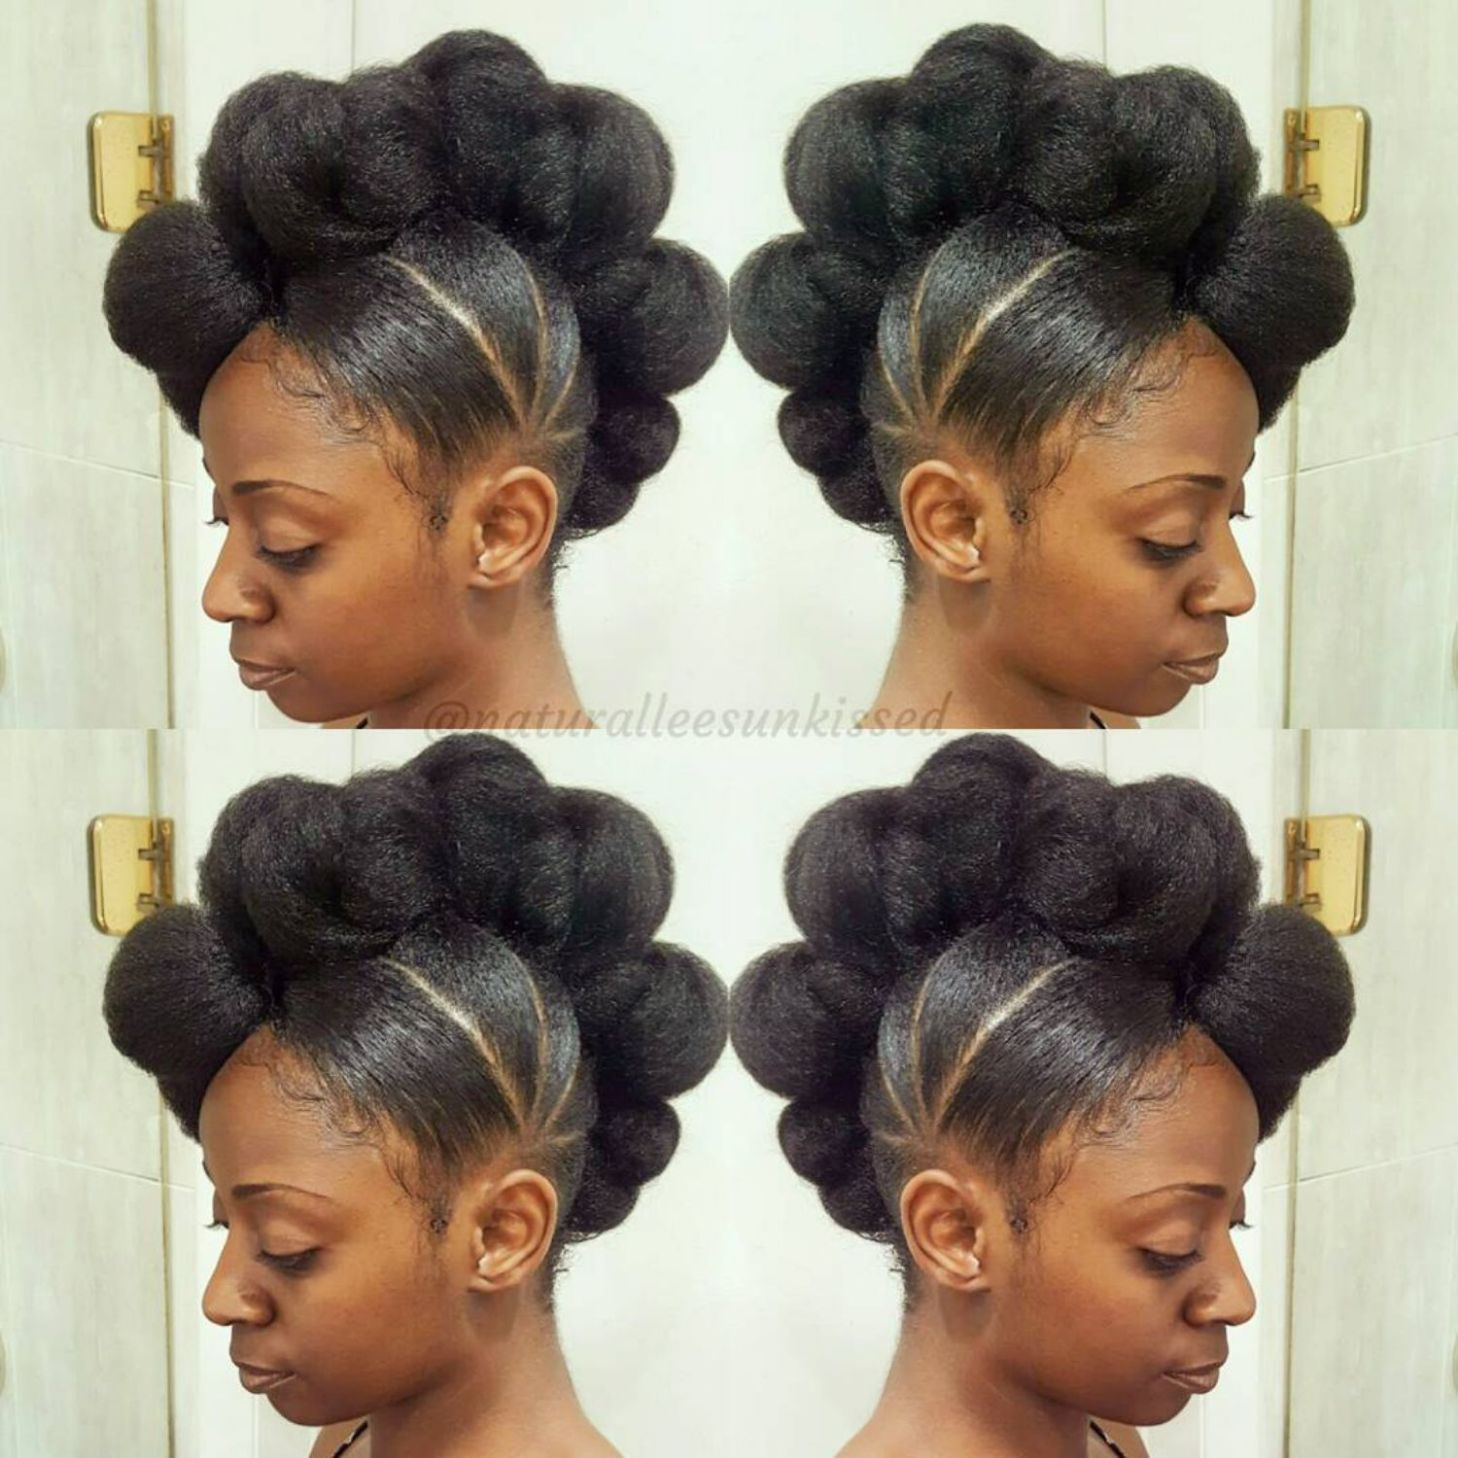 updo hairstyle #10: natural mohawk updo hairstyle | hair